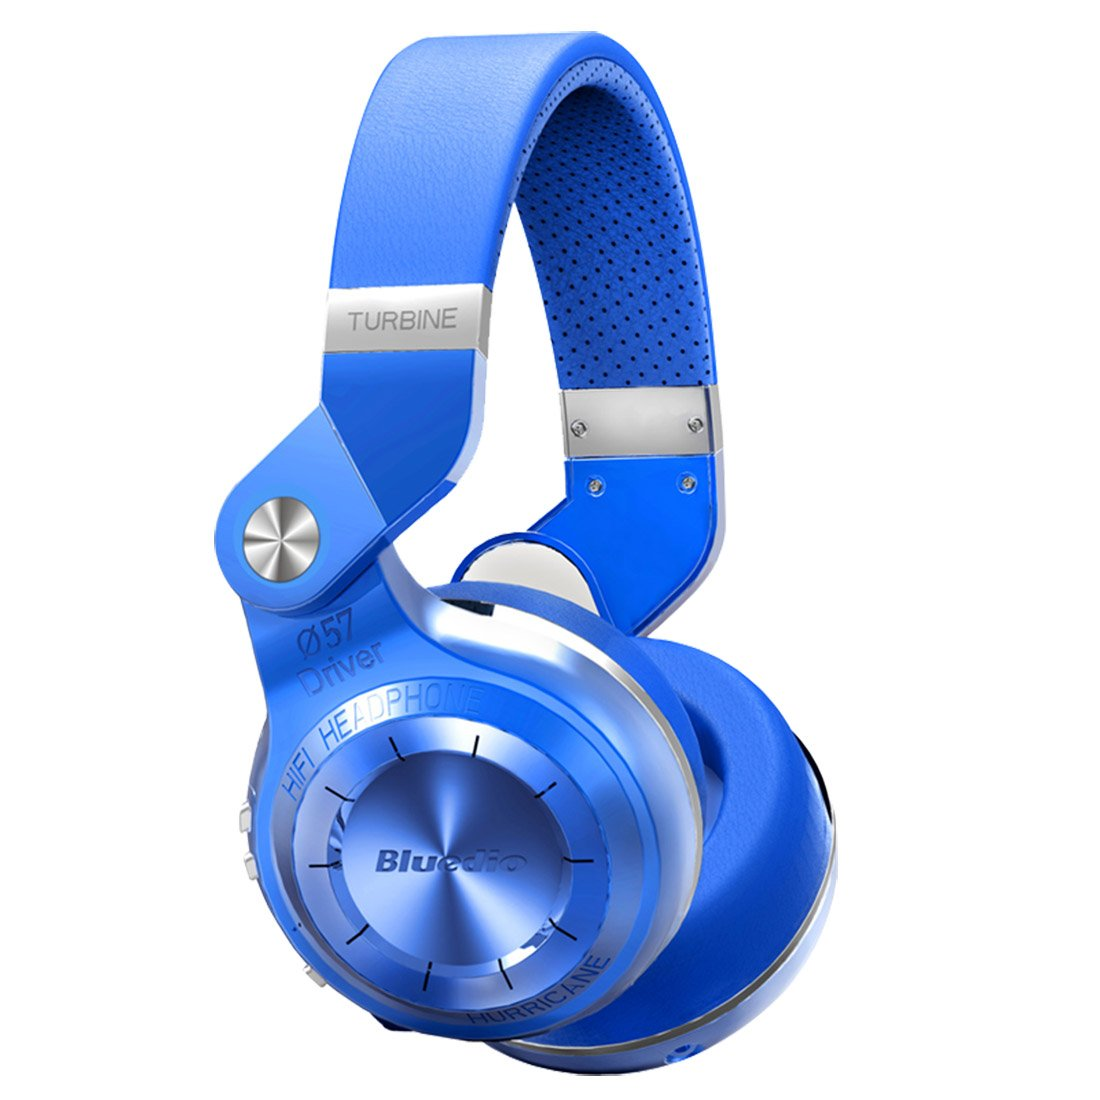 Auriculares Bluedio T2 Plus Turbine Inalambrico Bluetooth con Mic/Micro SD Card Slot/FM Radio (Blue)